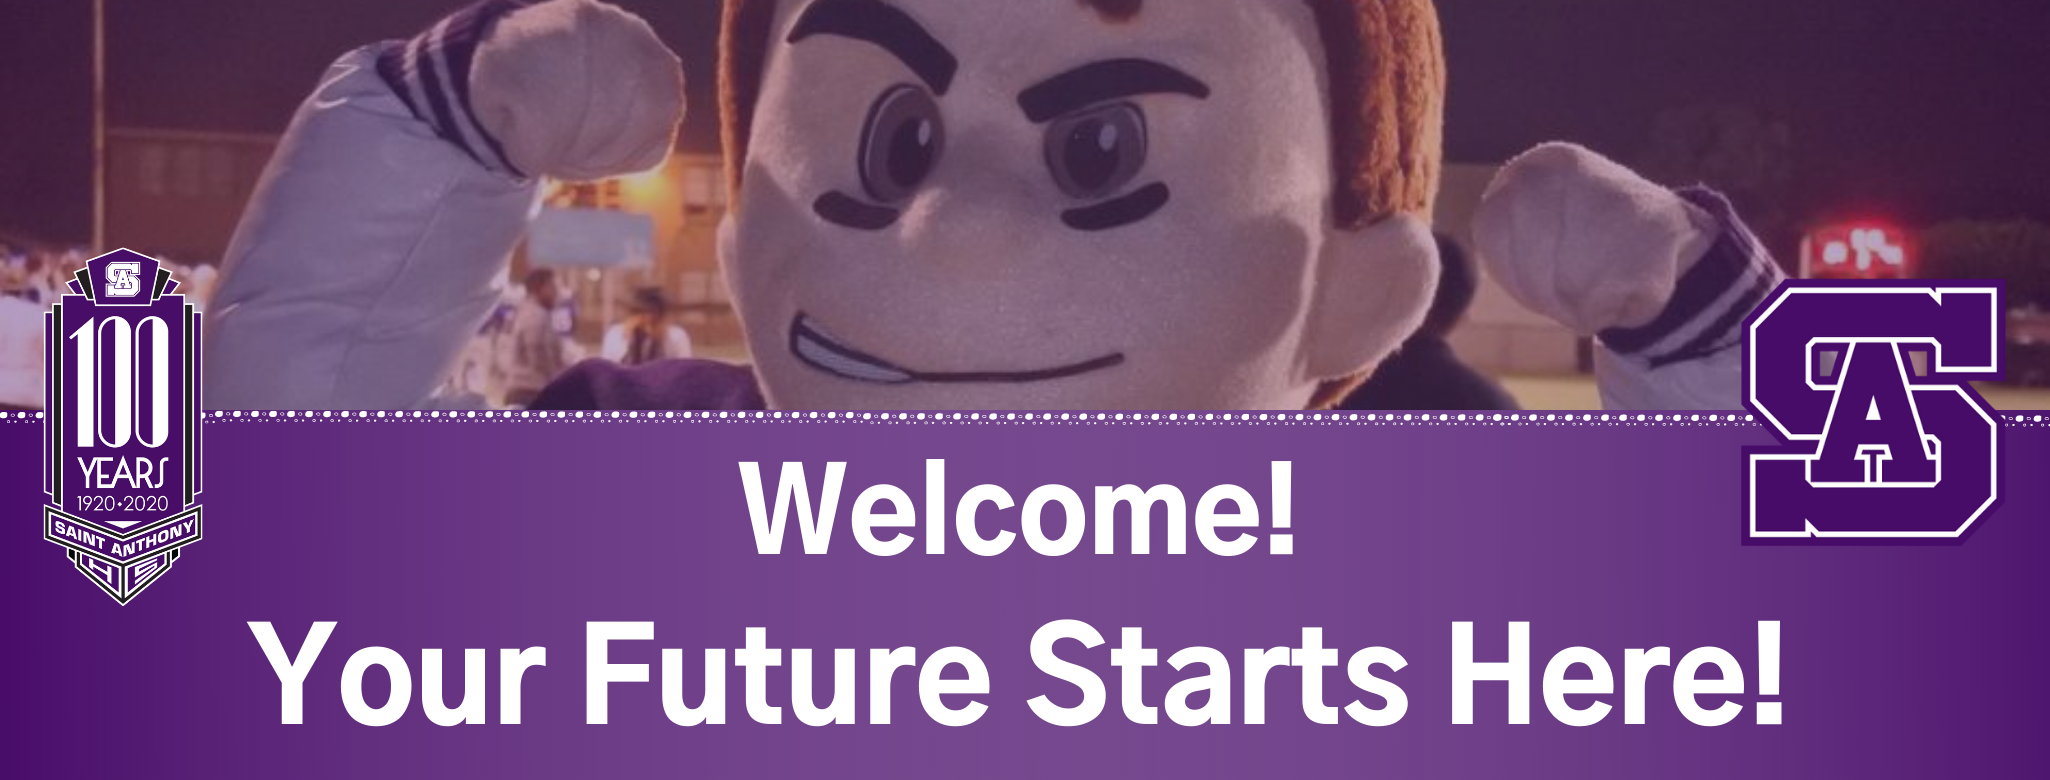 Your Future Starts Here! Image